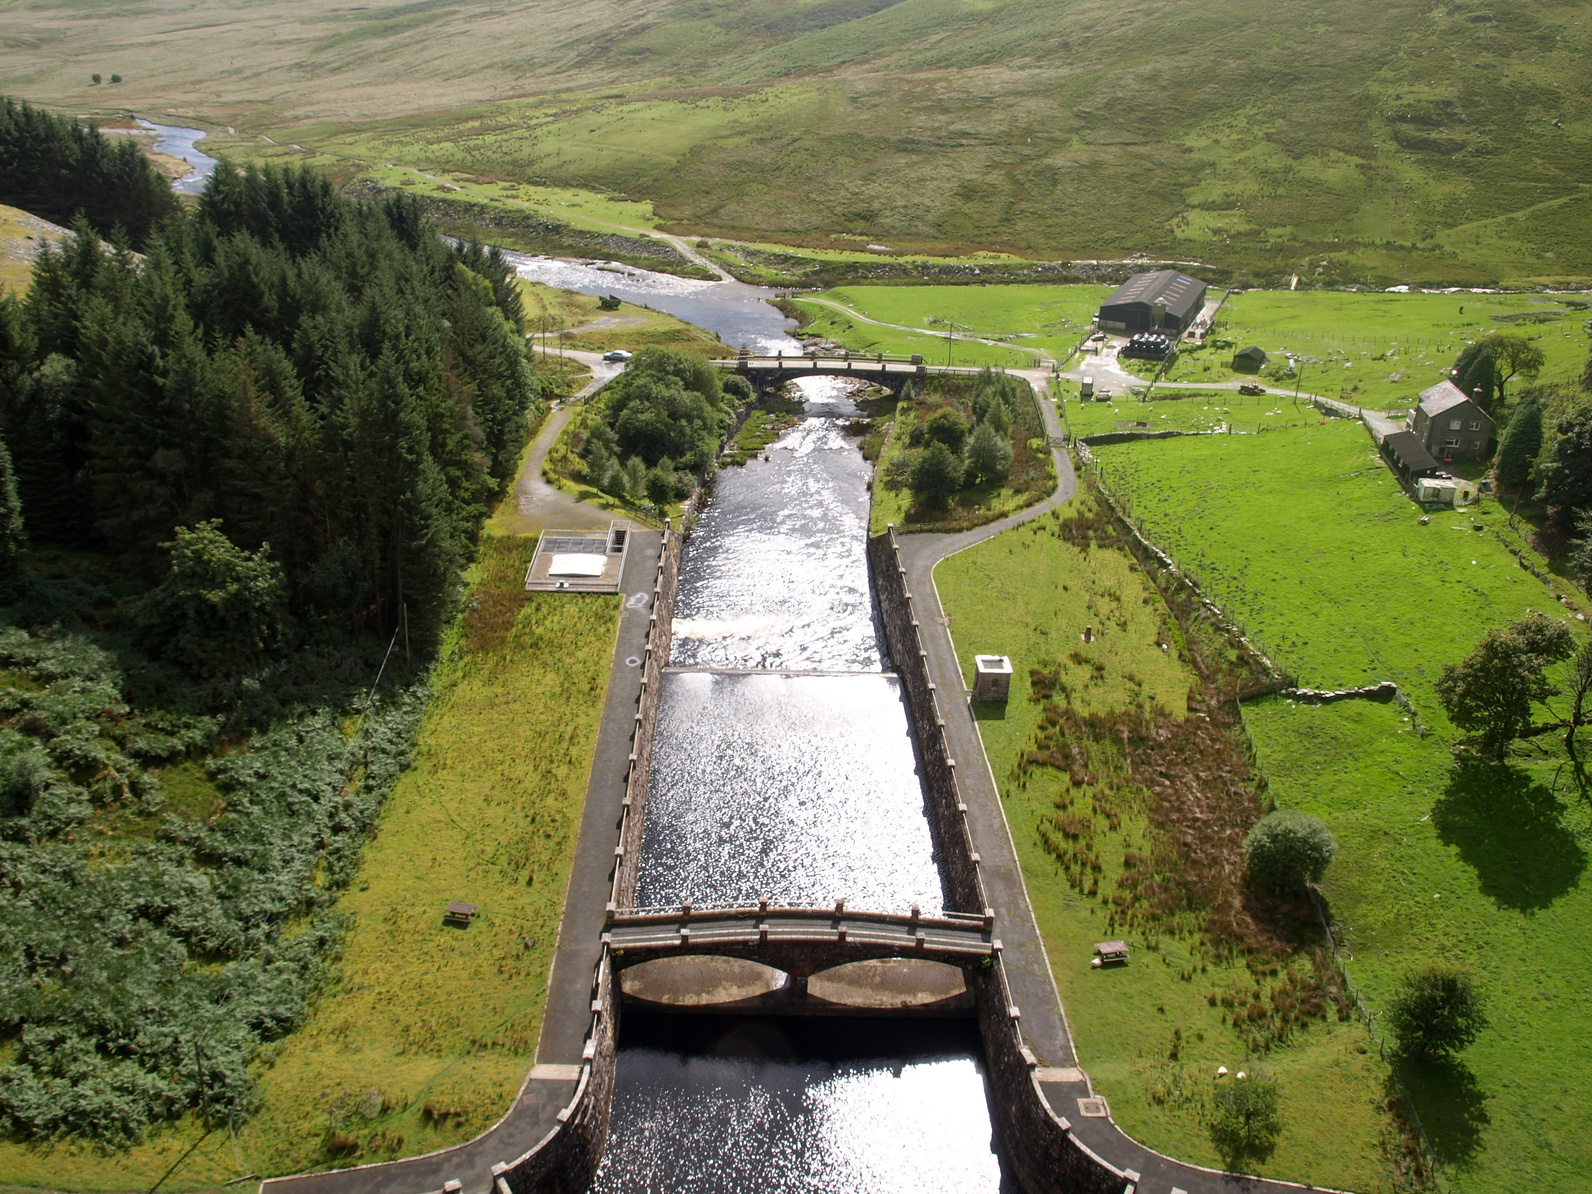 An aerial view of the Elan Valley